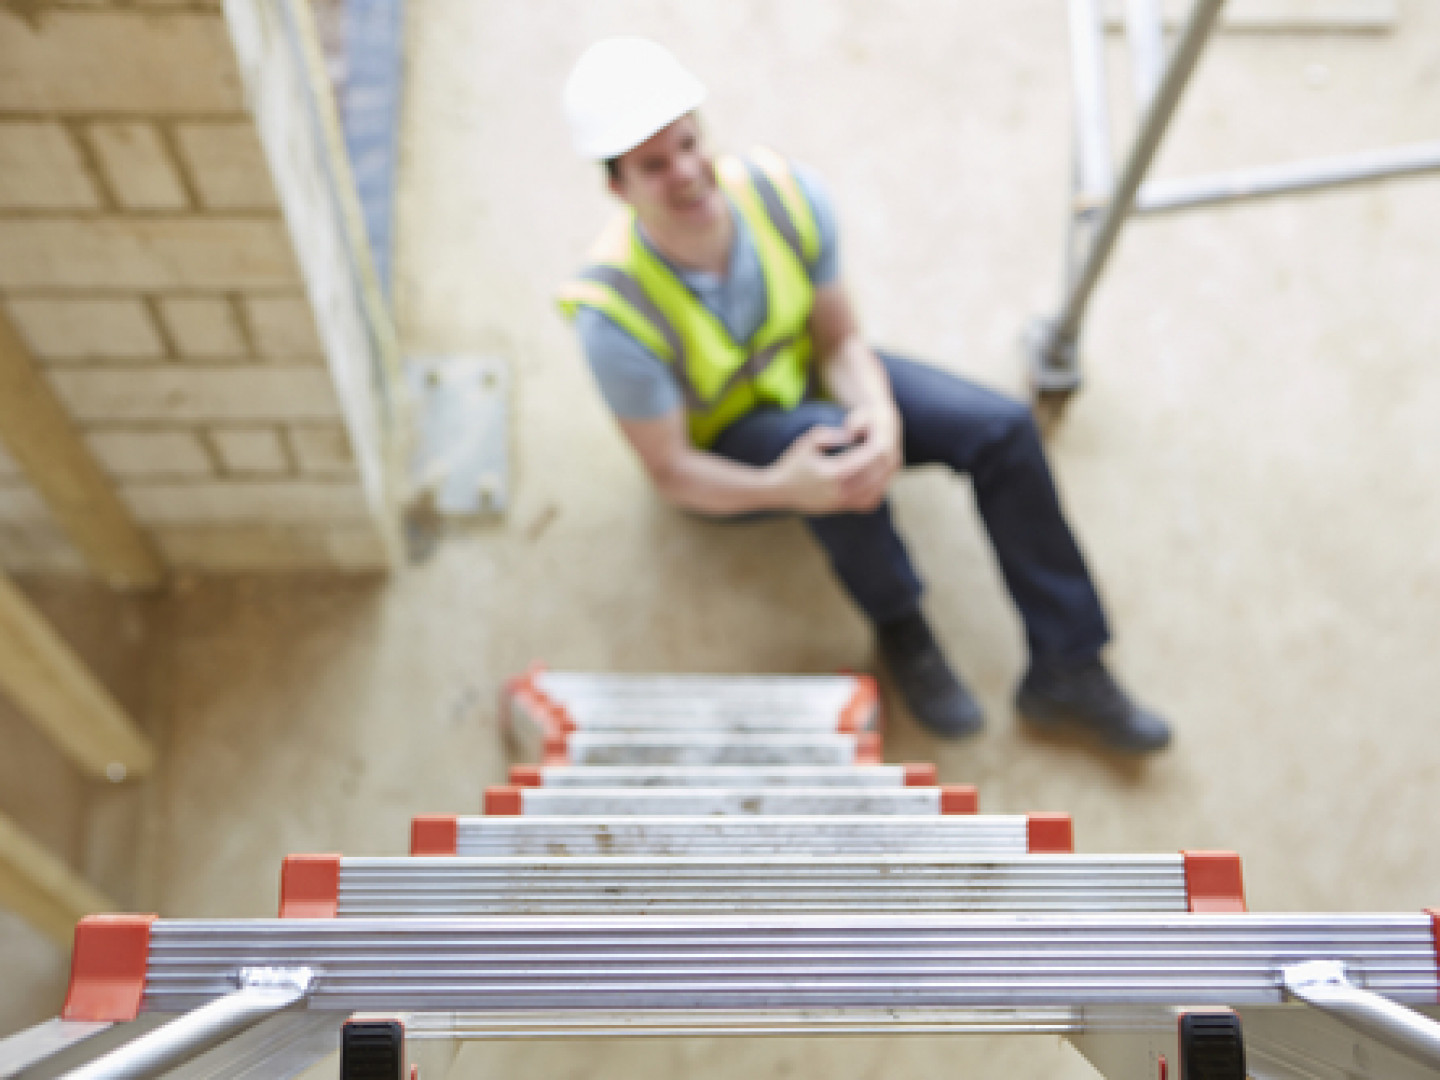 Liability for Ladder Accidents in New York